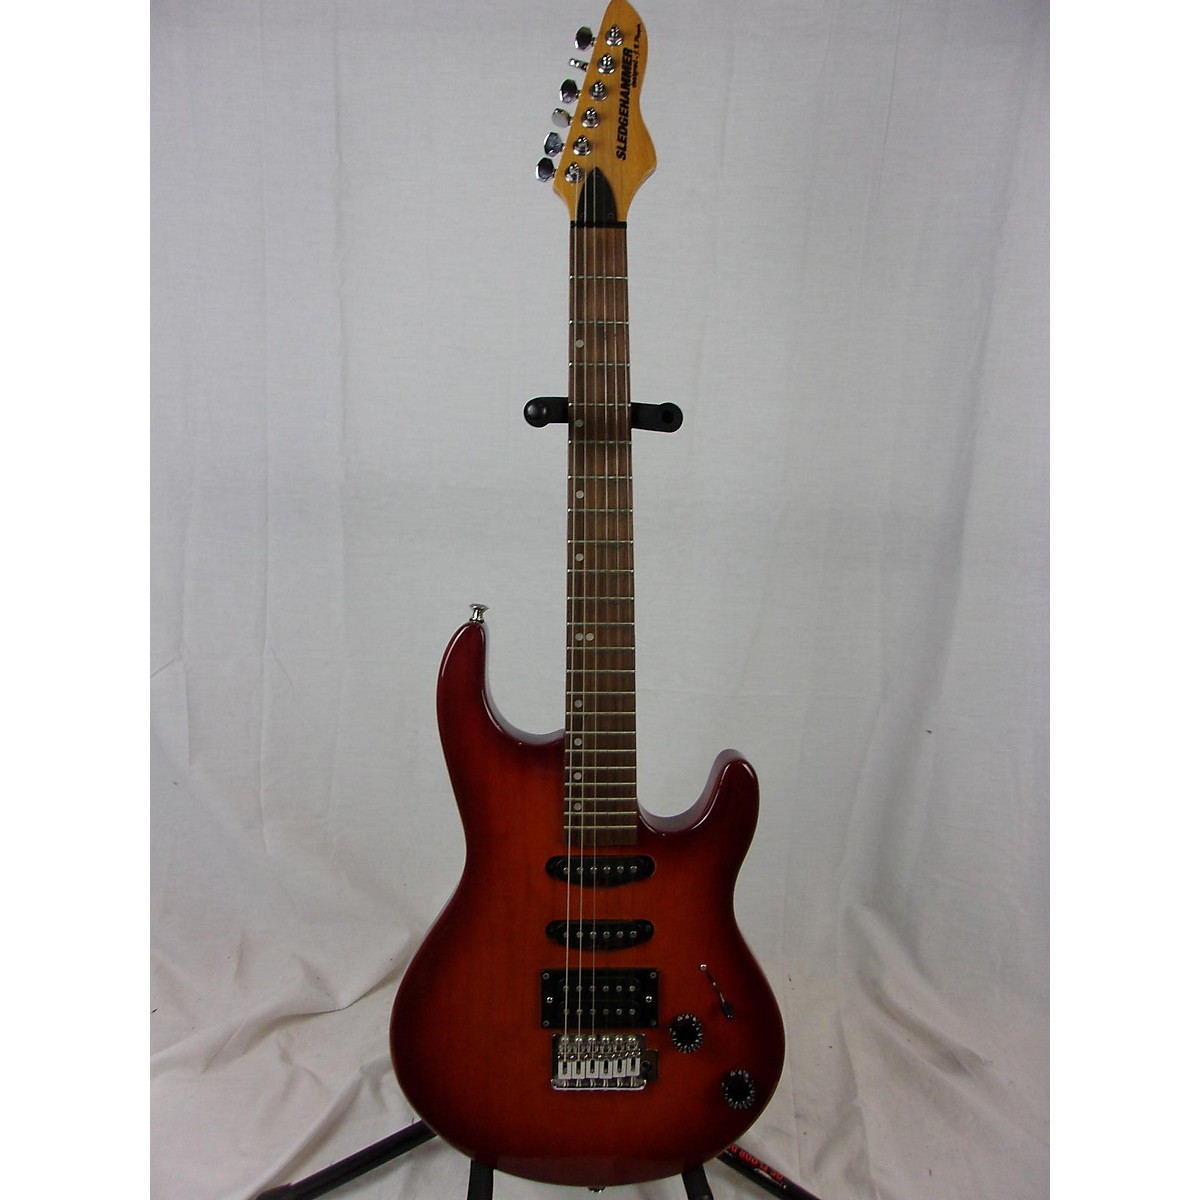 JB Player Sledgehammer Solid Body Electric Guitar